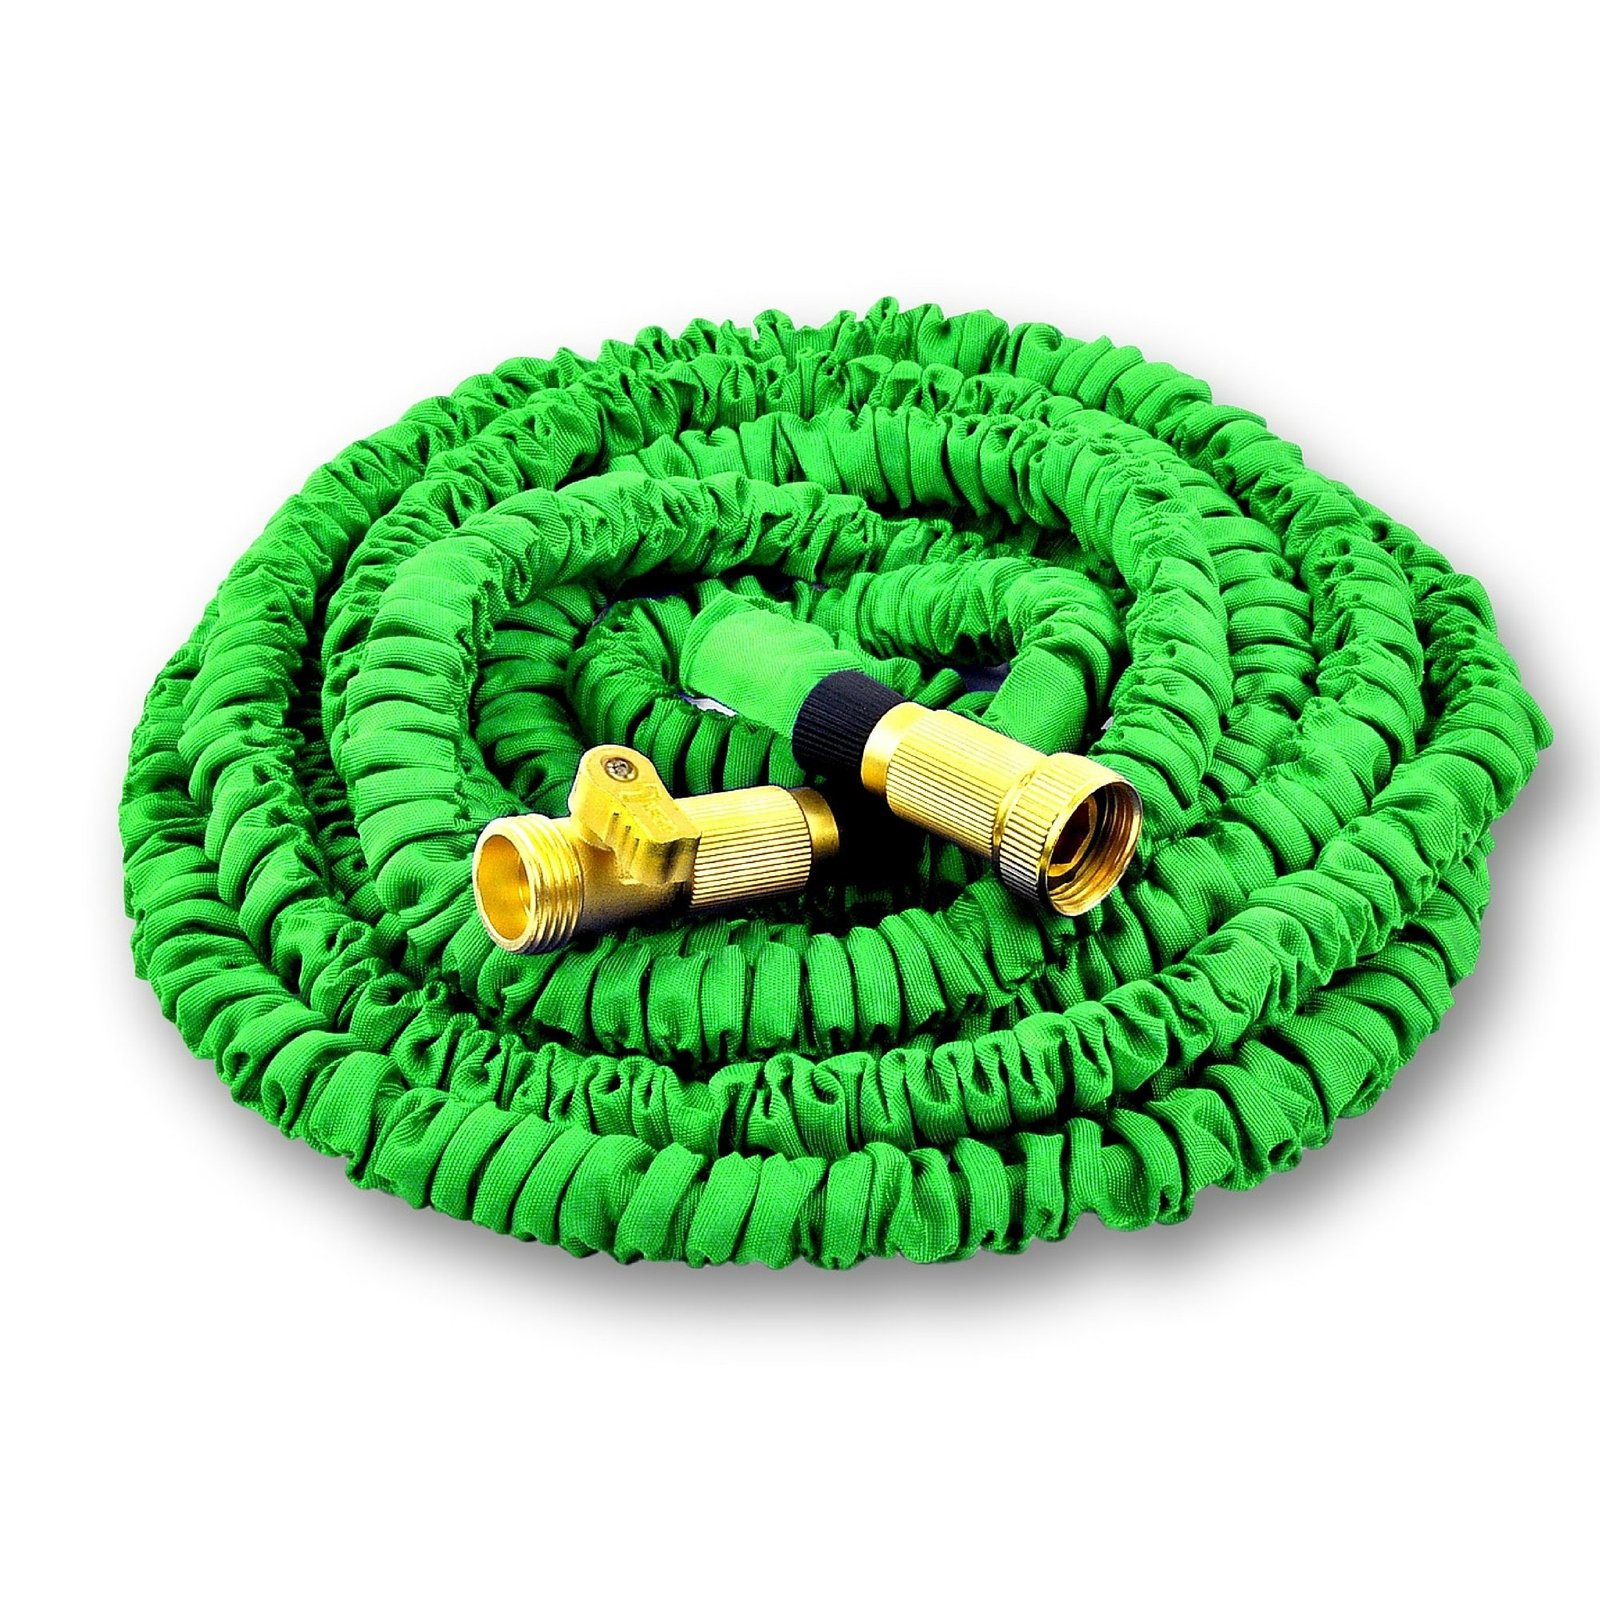 World 39 S Strongest 25 Ft Expandable Garden Hose With Made